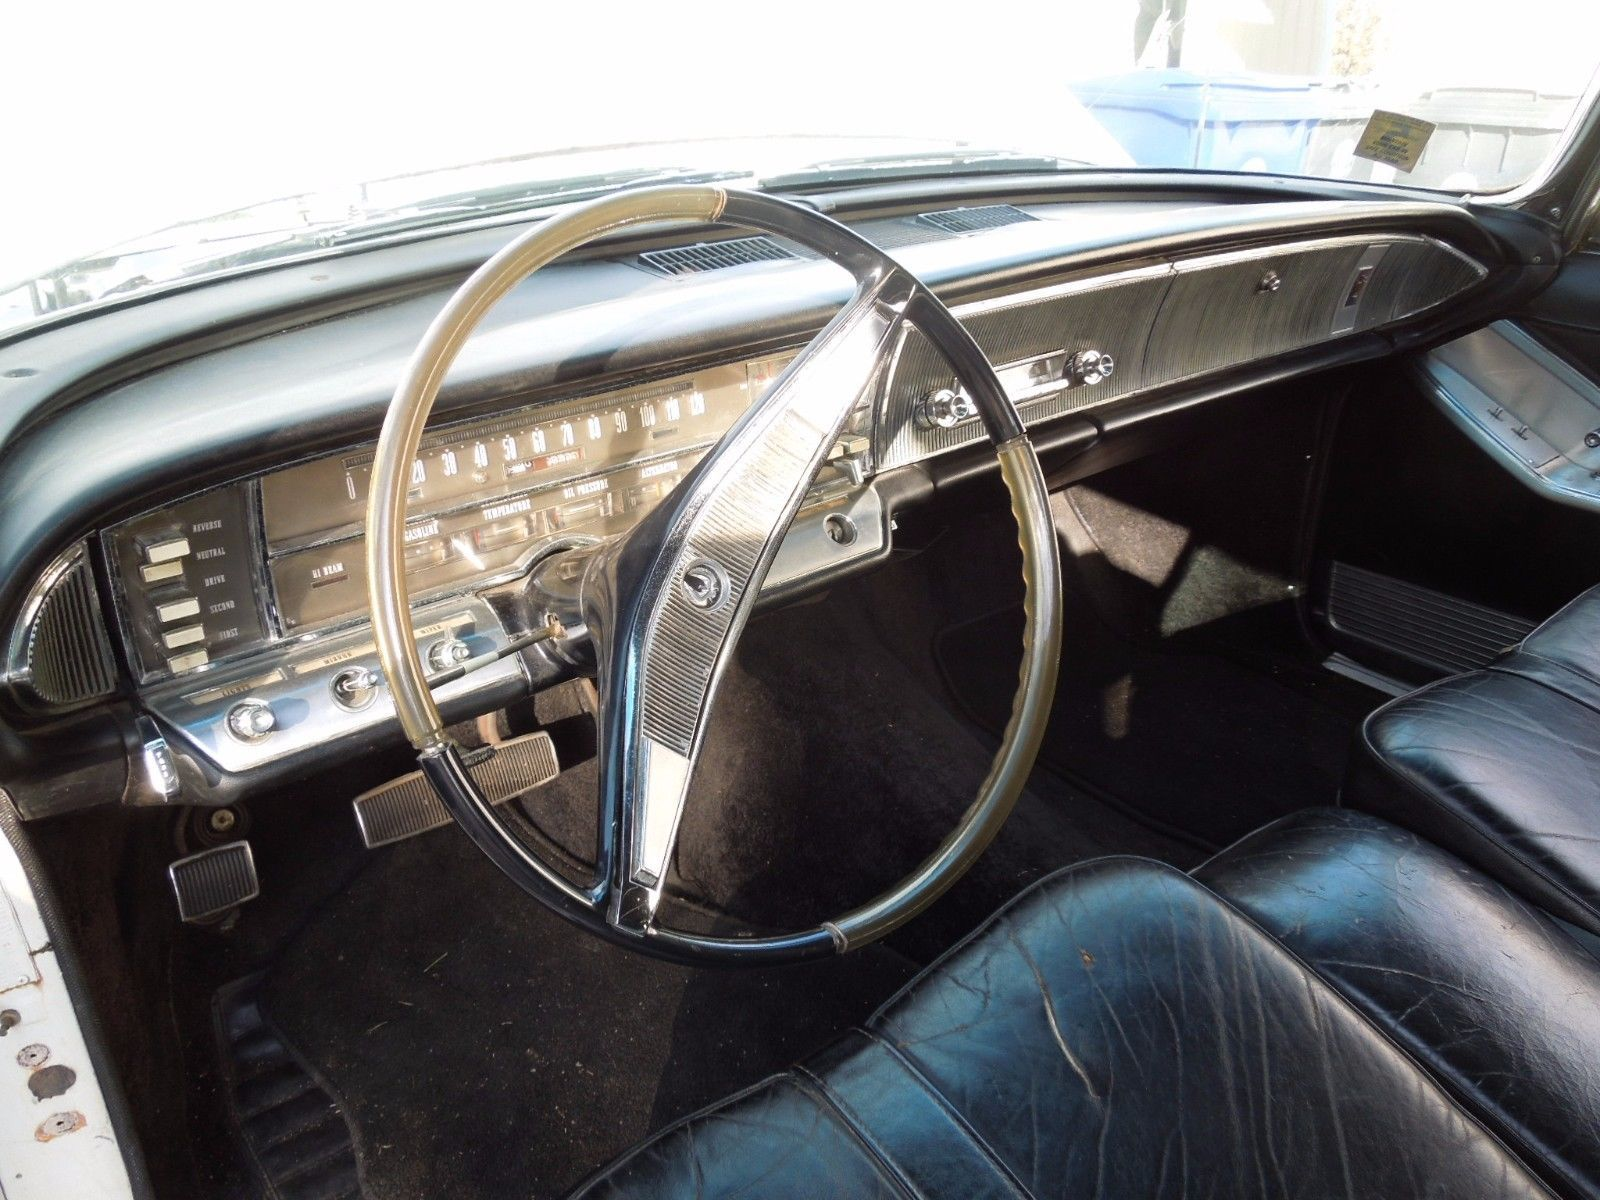 1964 Chrysler Imperial Convertible